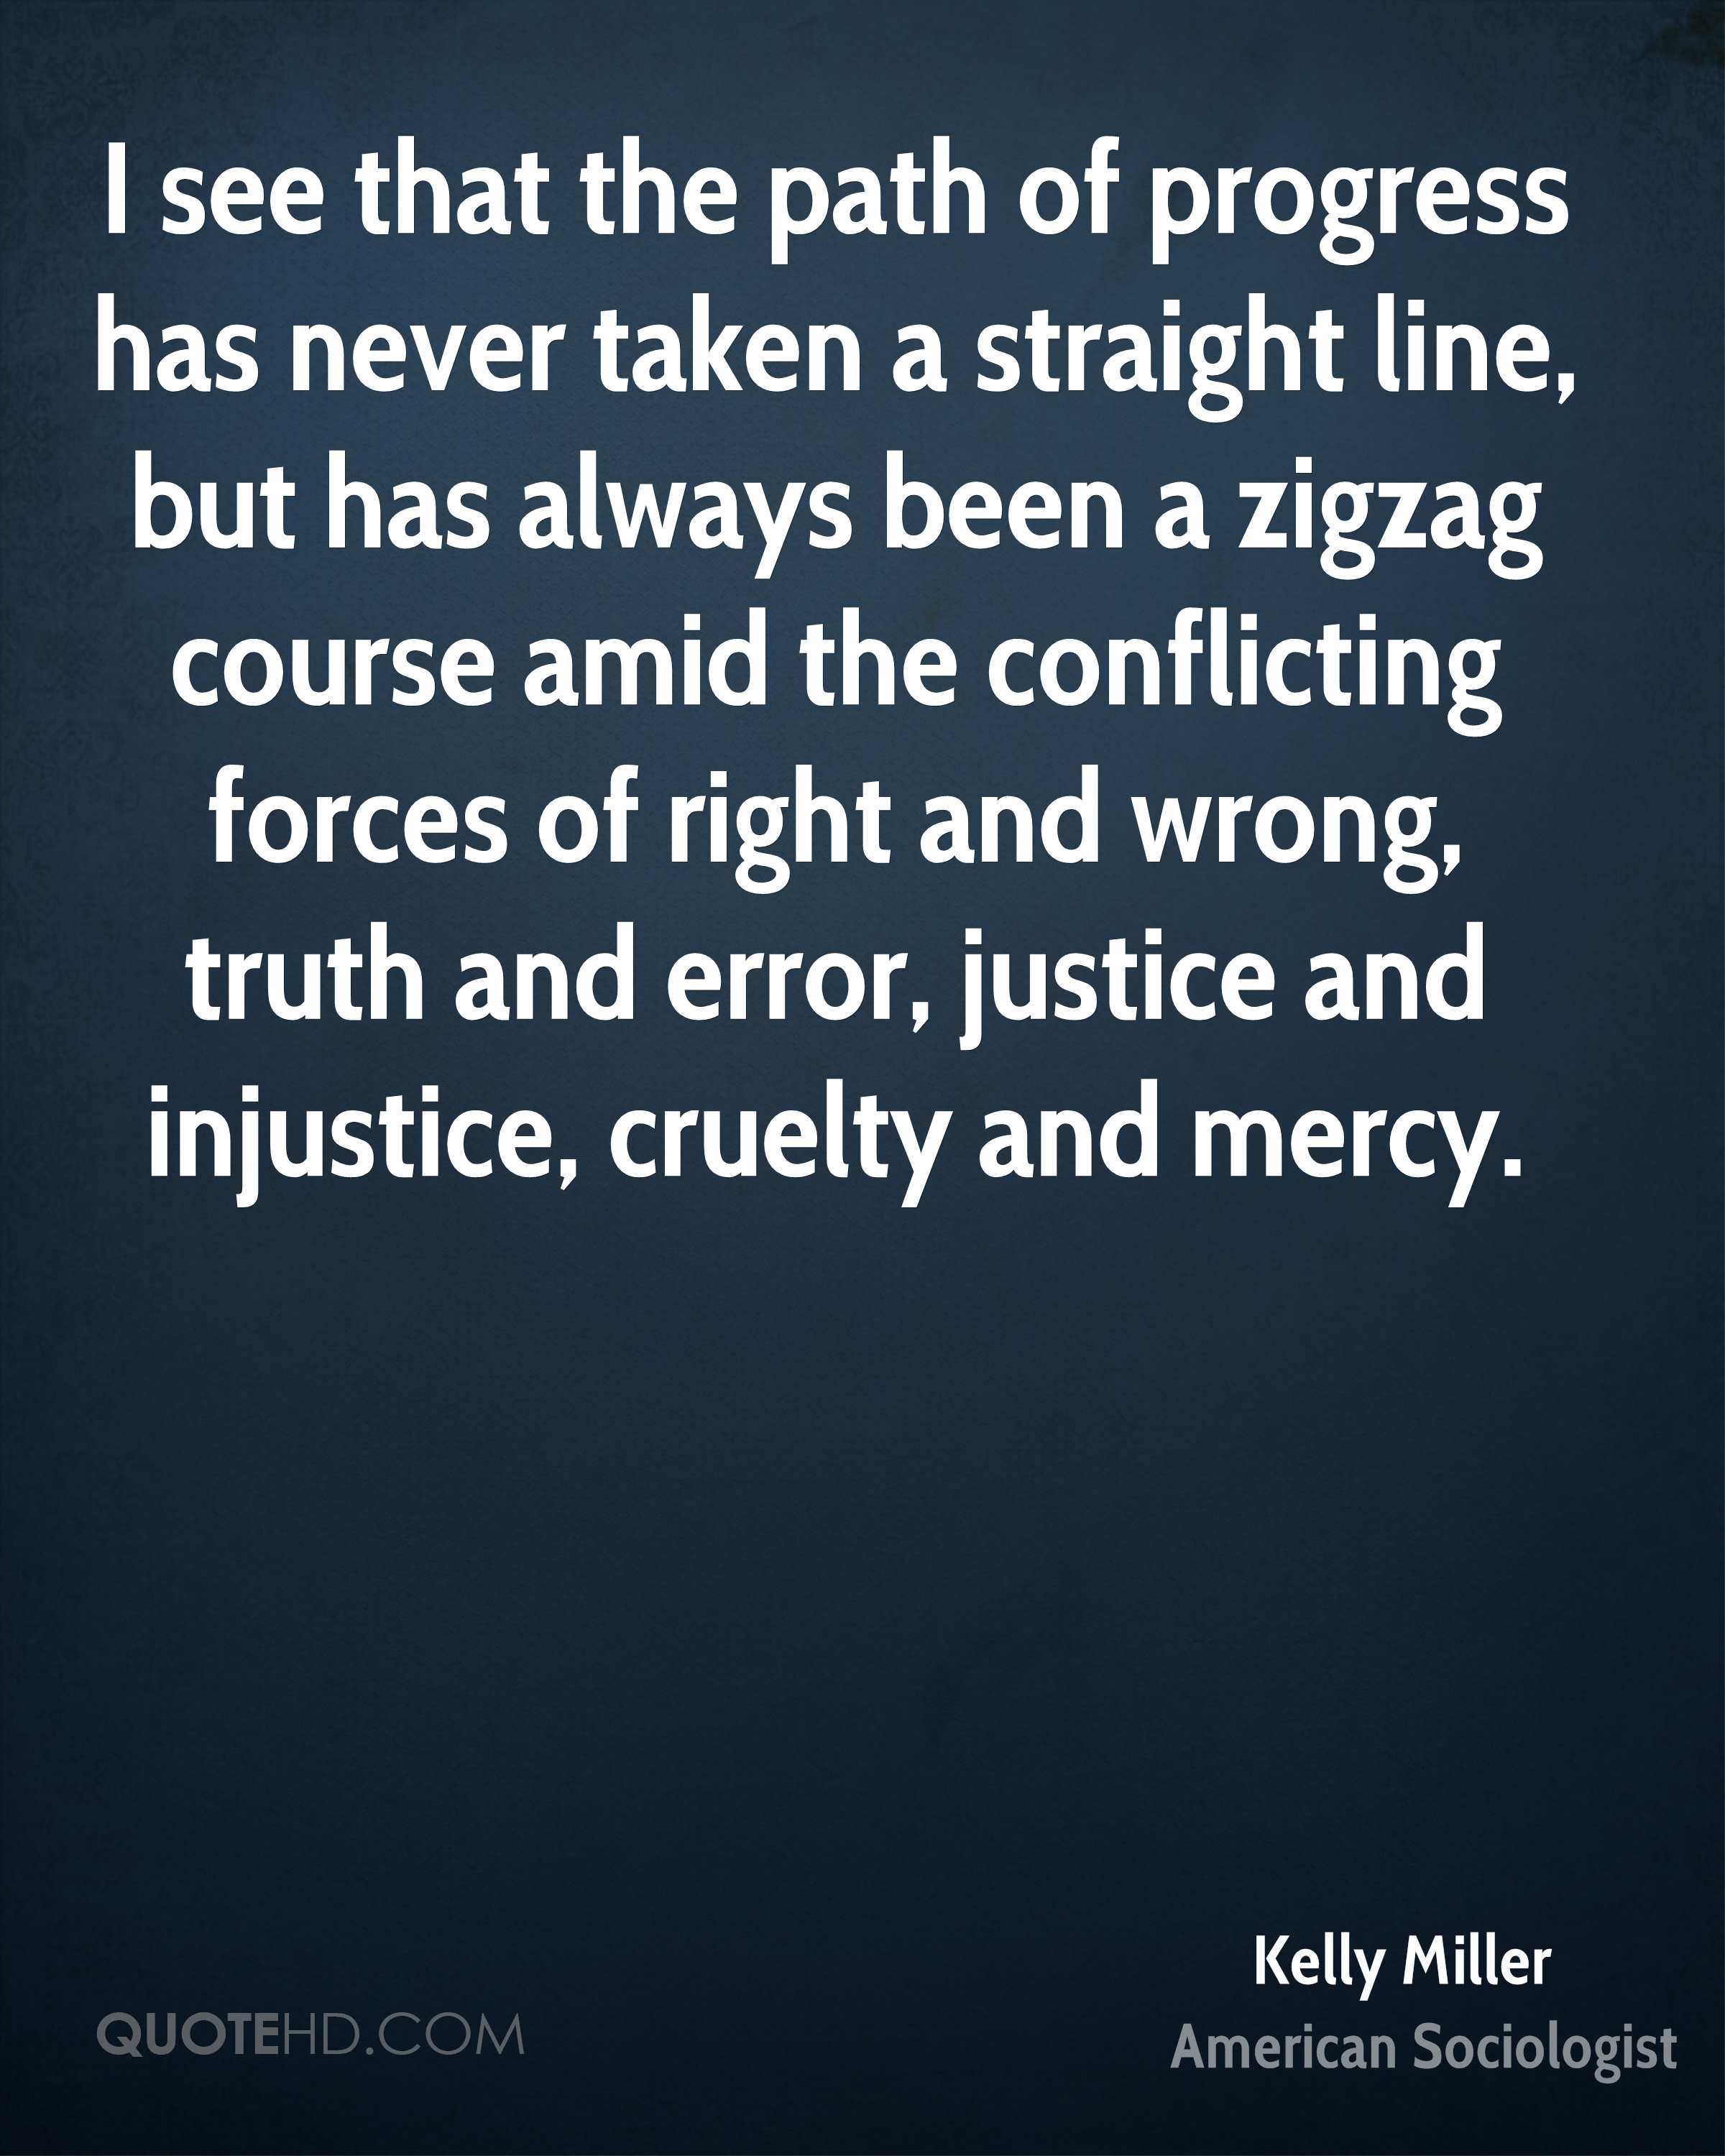 I see that the path of progress has never taken a straight line, but has always been a zigzag course amid the conflicting forces of right and wrong, truth and error, justice and injustice, cruelty and mercy.